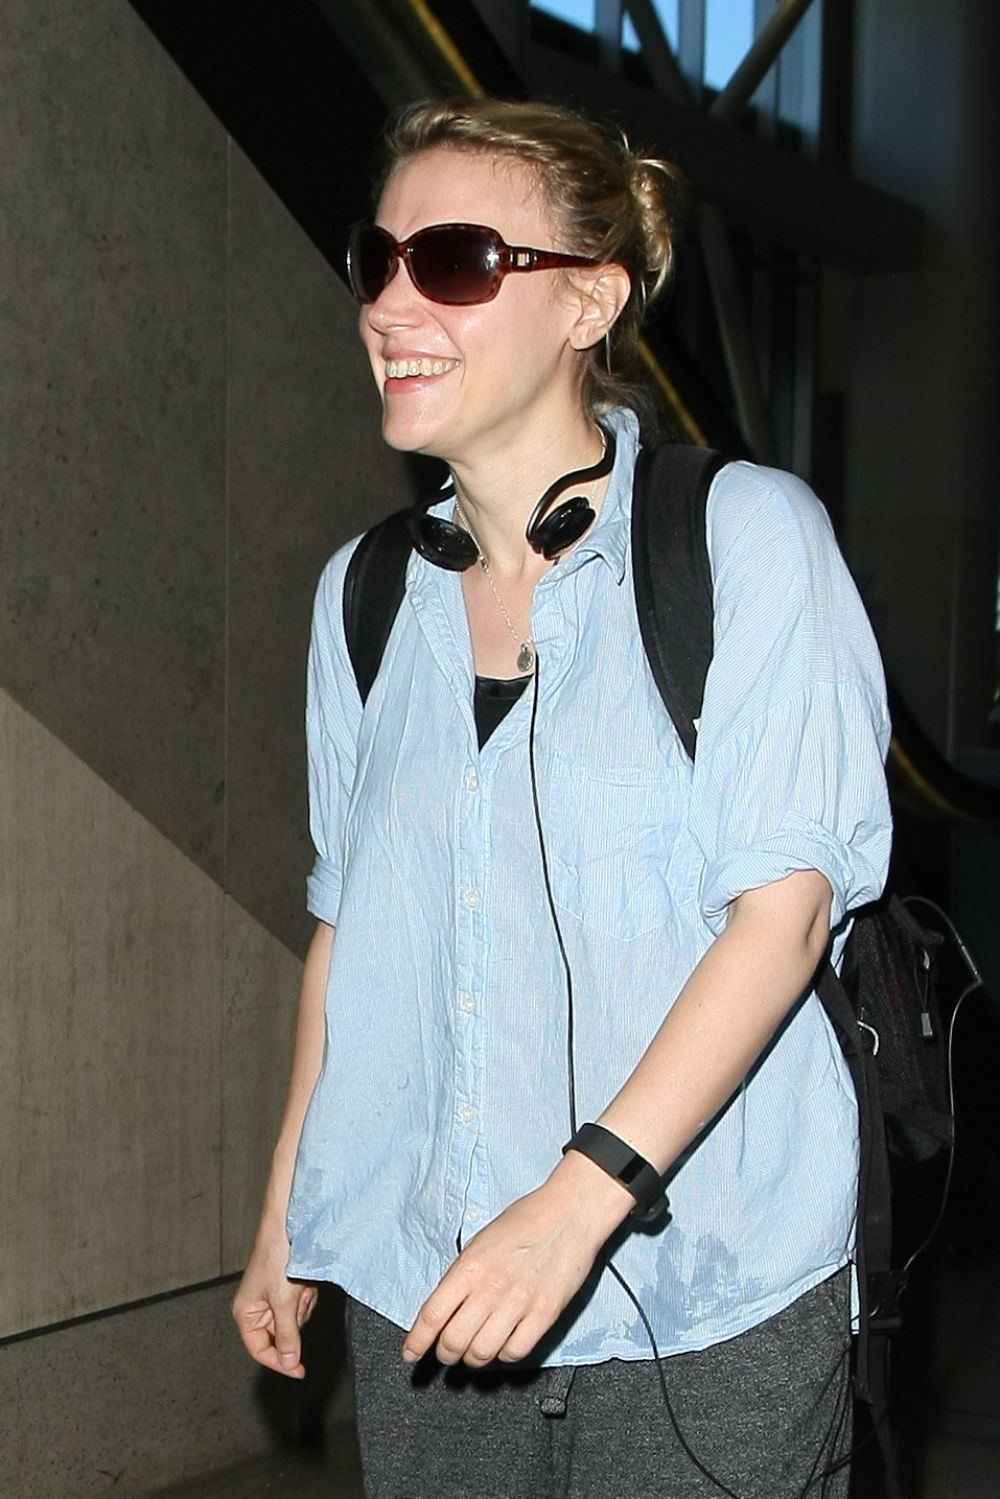 KATE MCKINNON at Los Angeles International Airport 07/06/2016